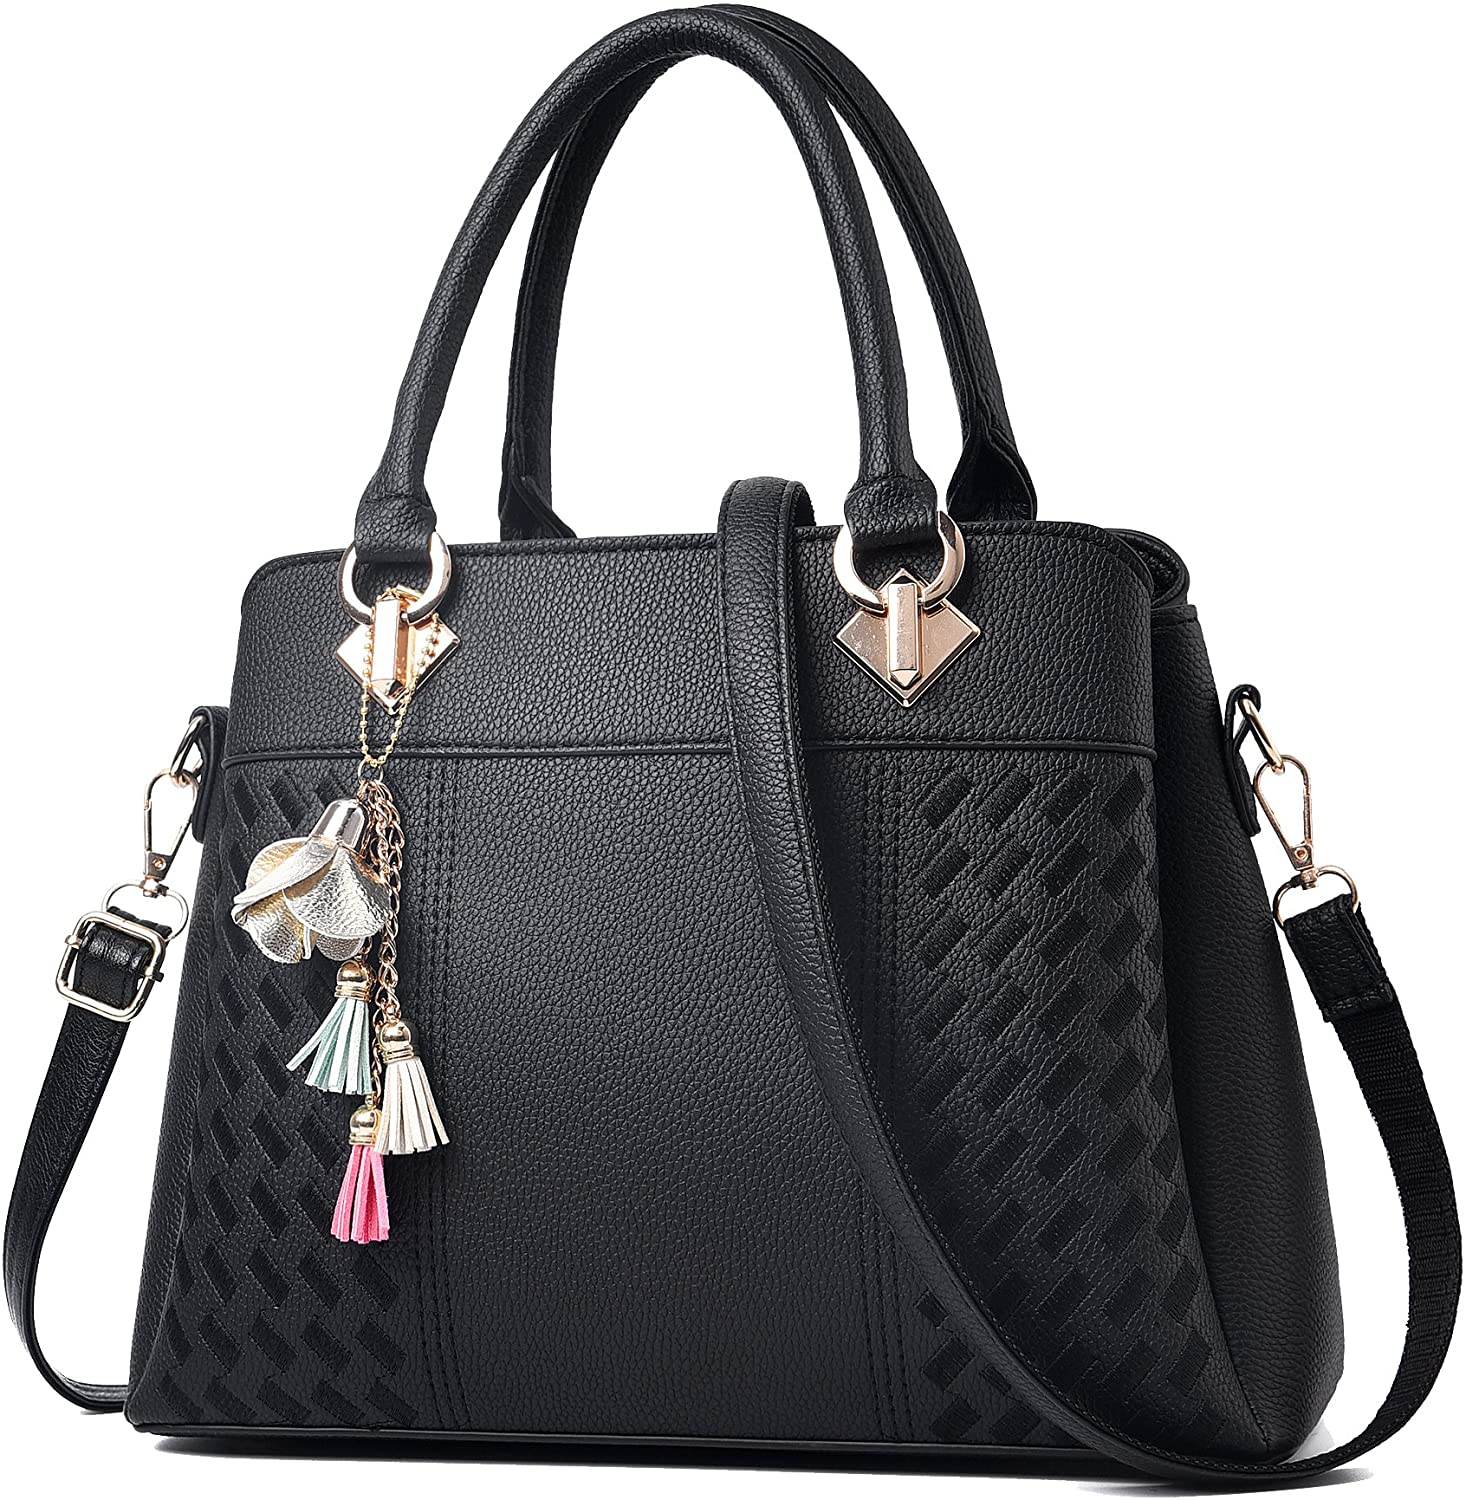 [Image: handbags%20for%20women-318czh.jpg]